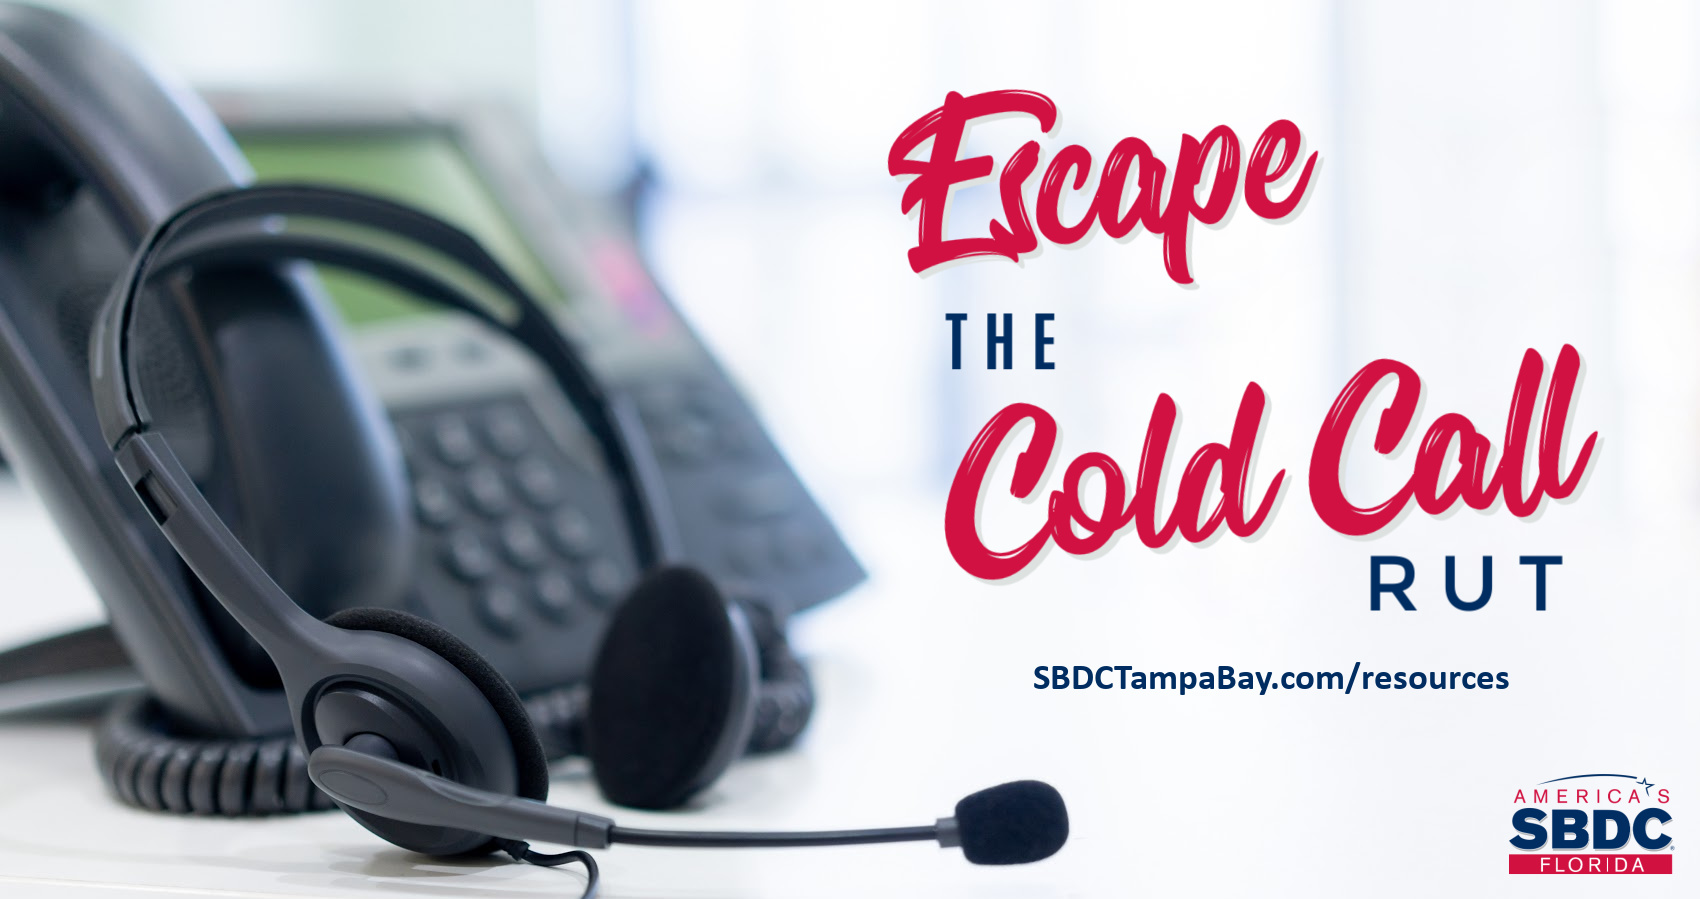 Escape the Cold Call Rut